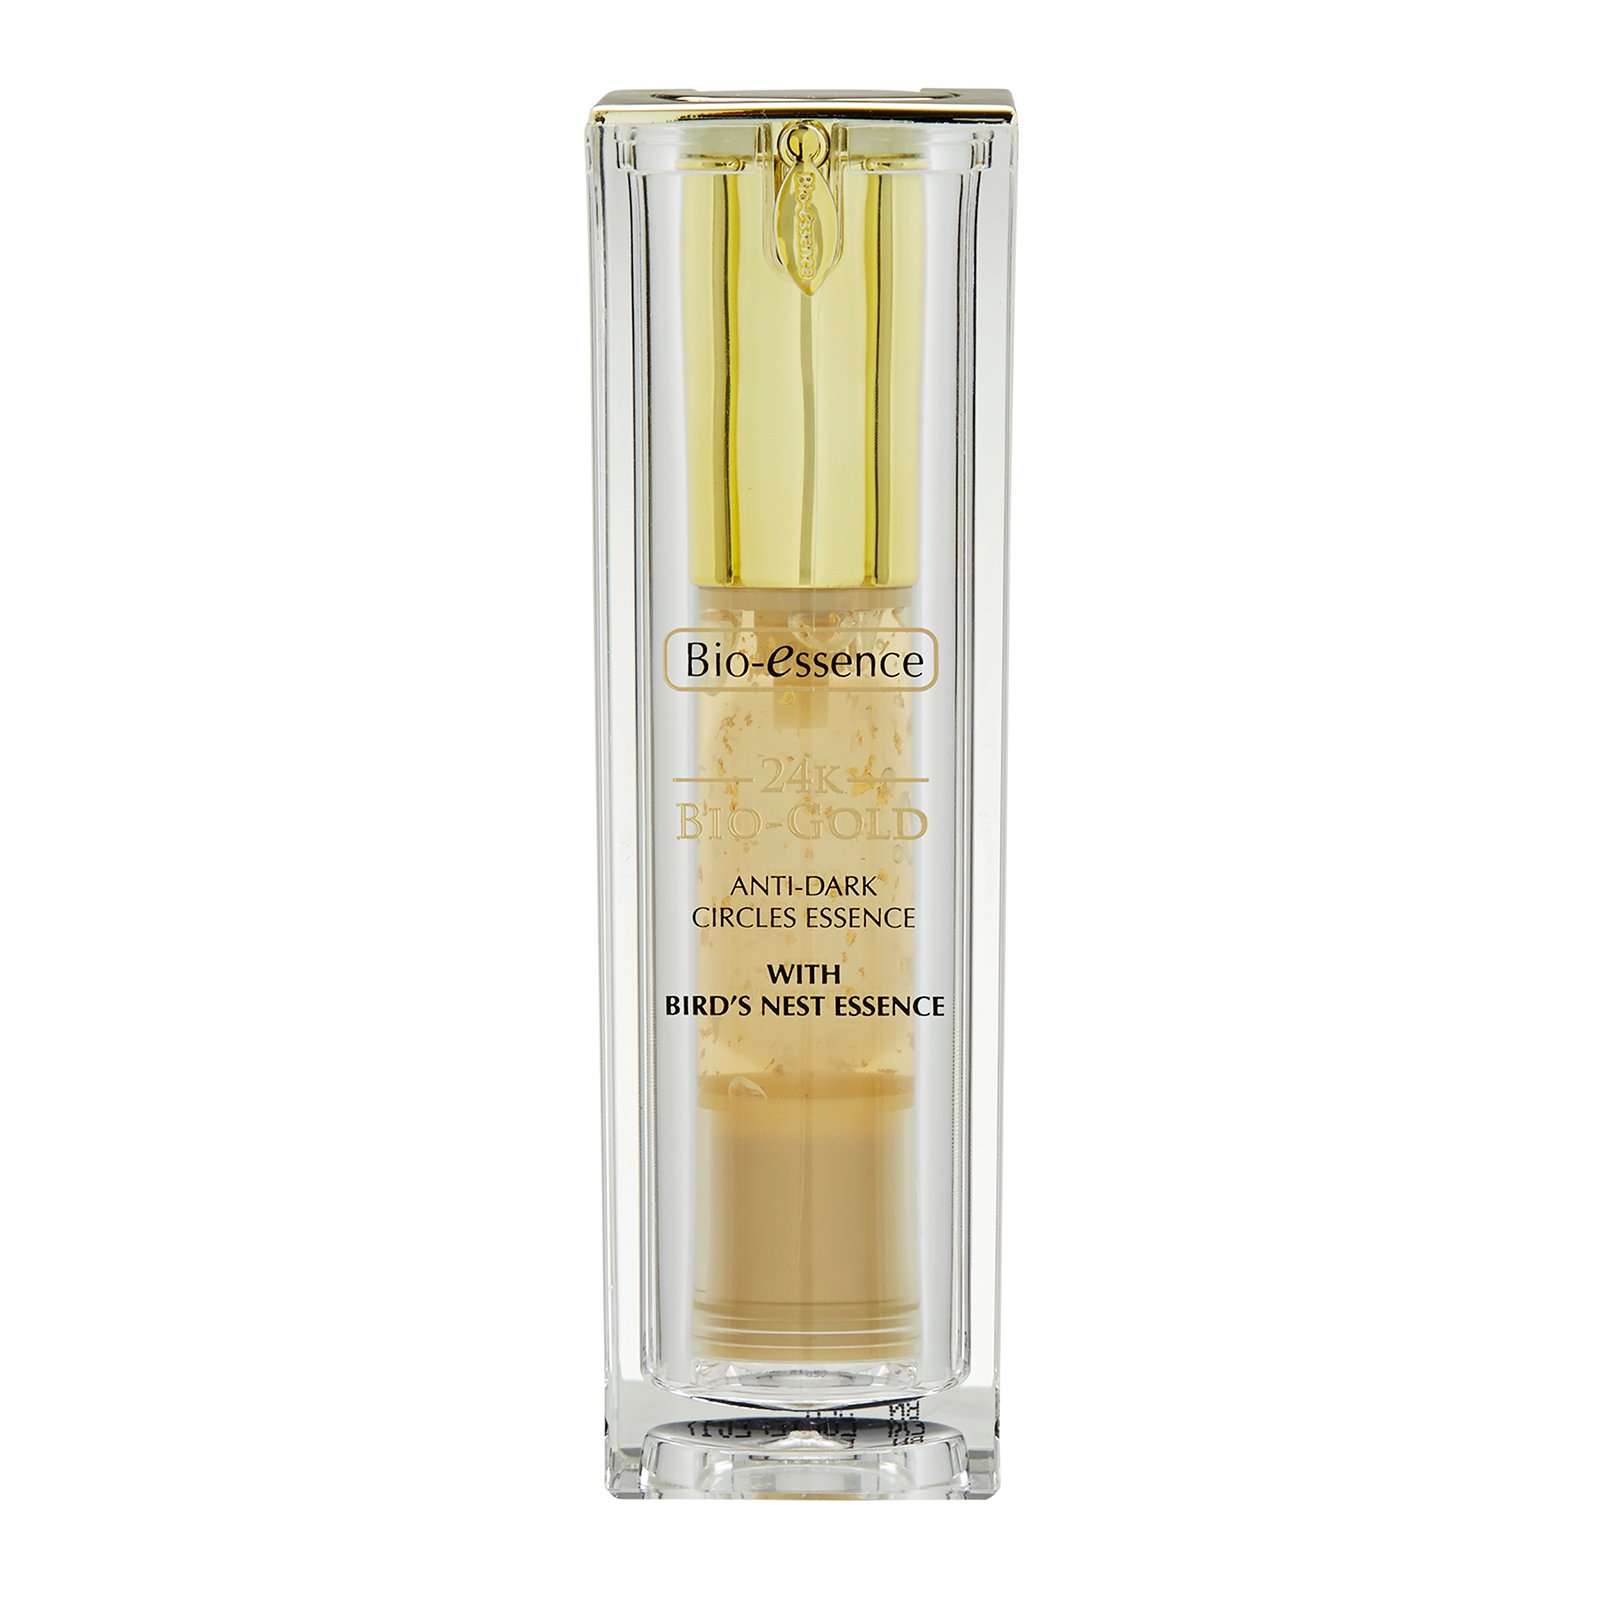 Bio Essence 24K Bio-Gold  Anti-Dark Circles Essence 20g,